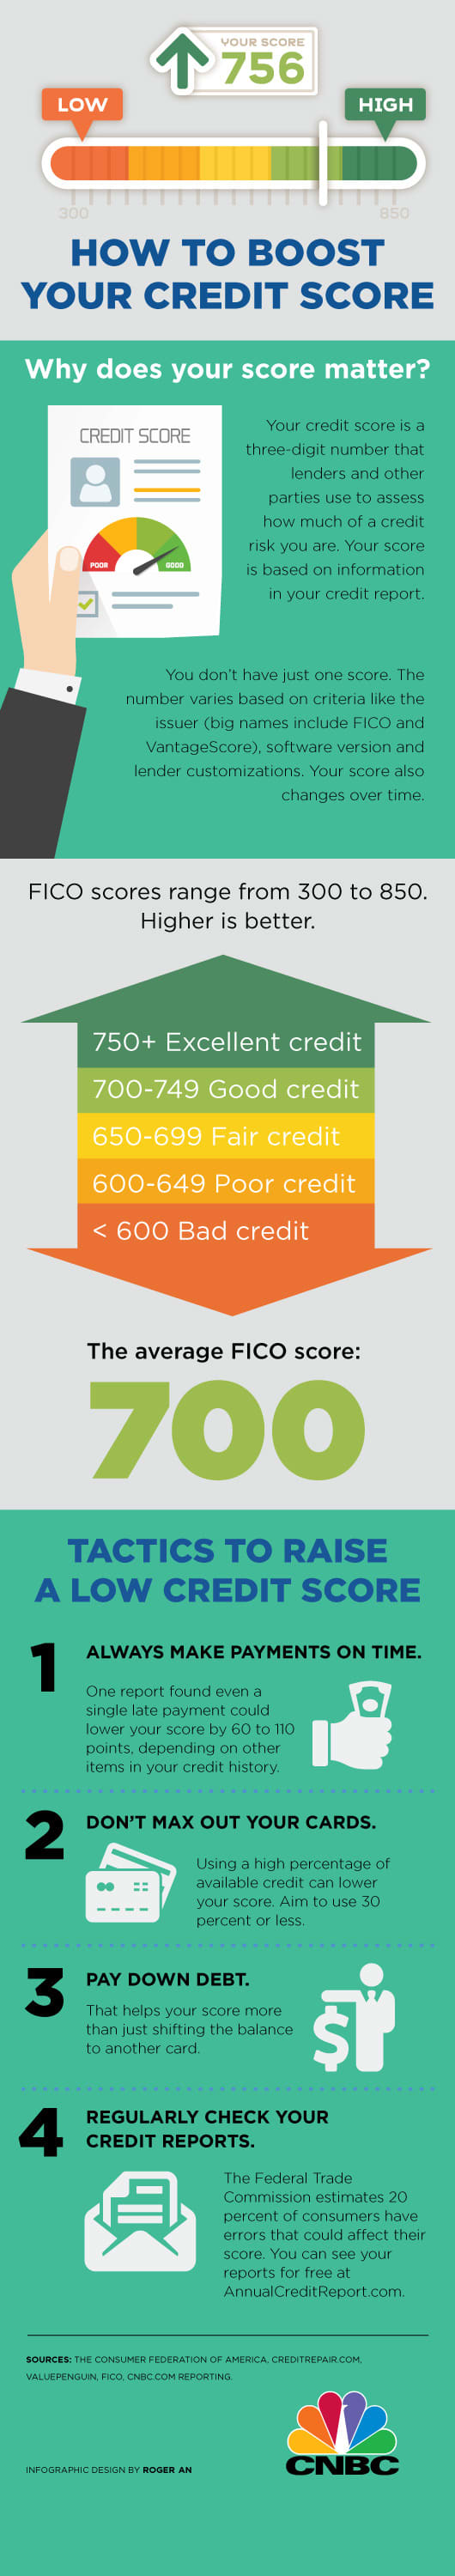 Improve credit score infographic